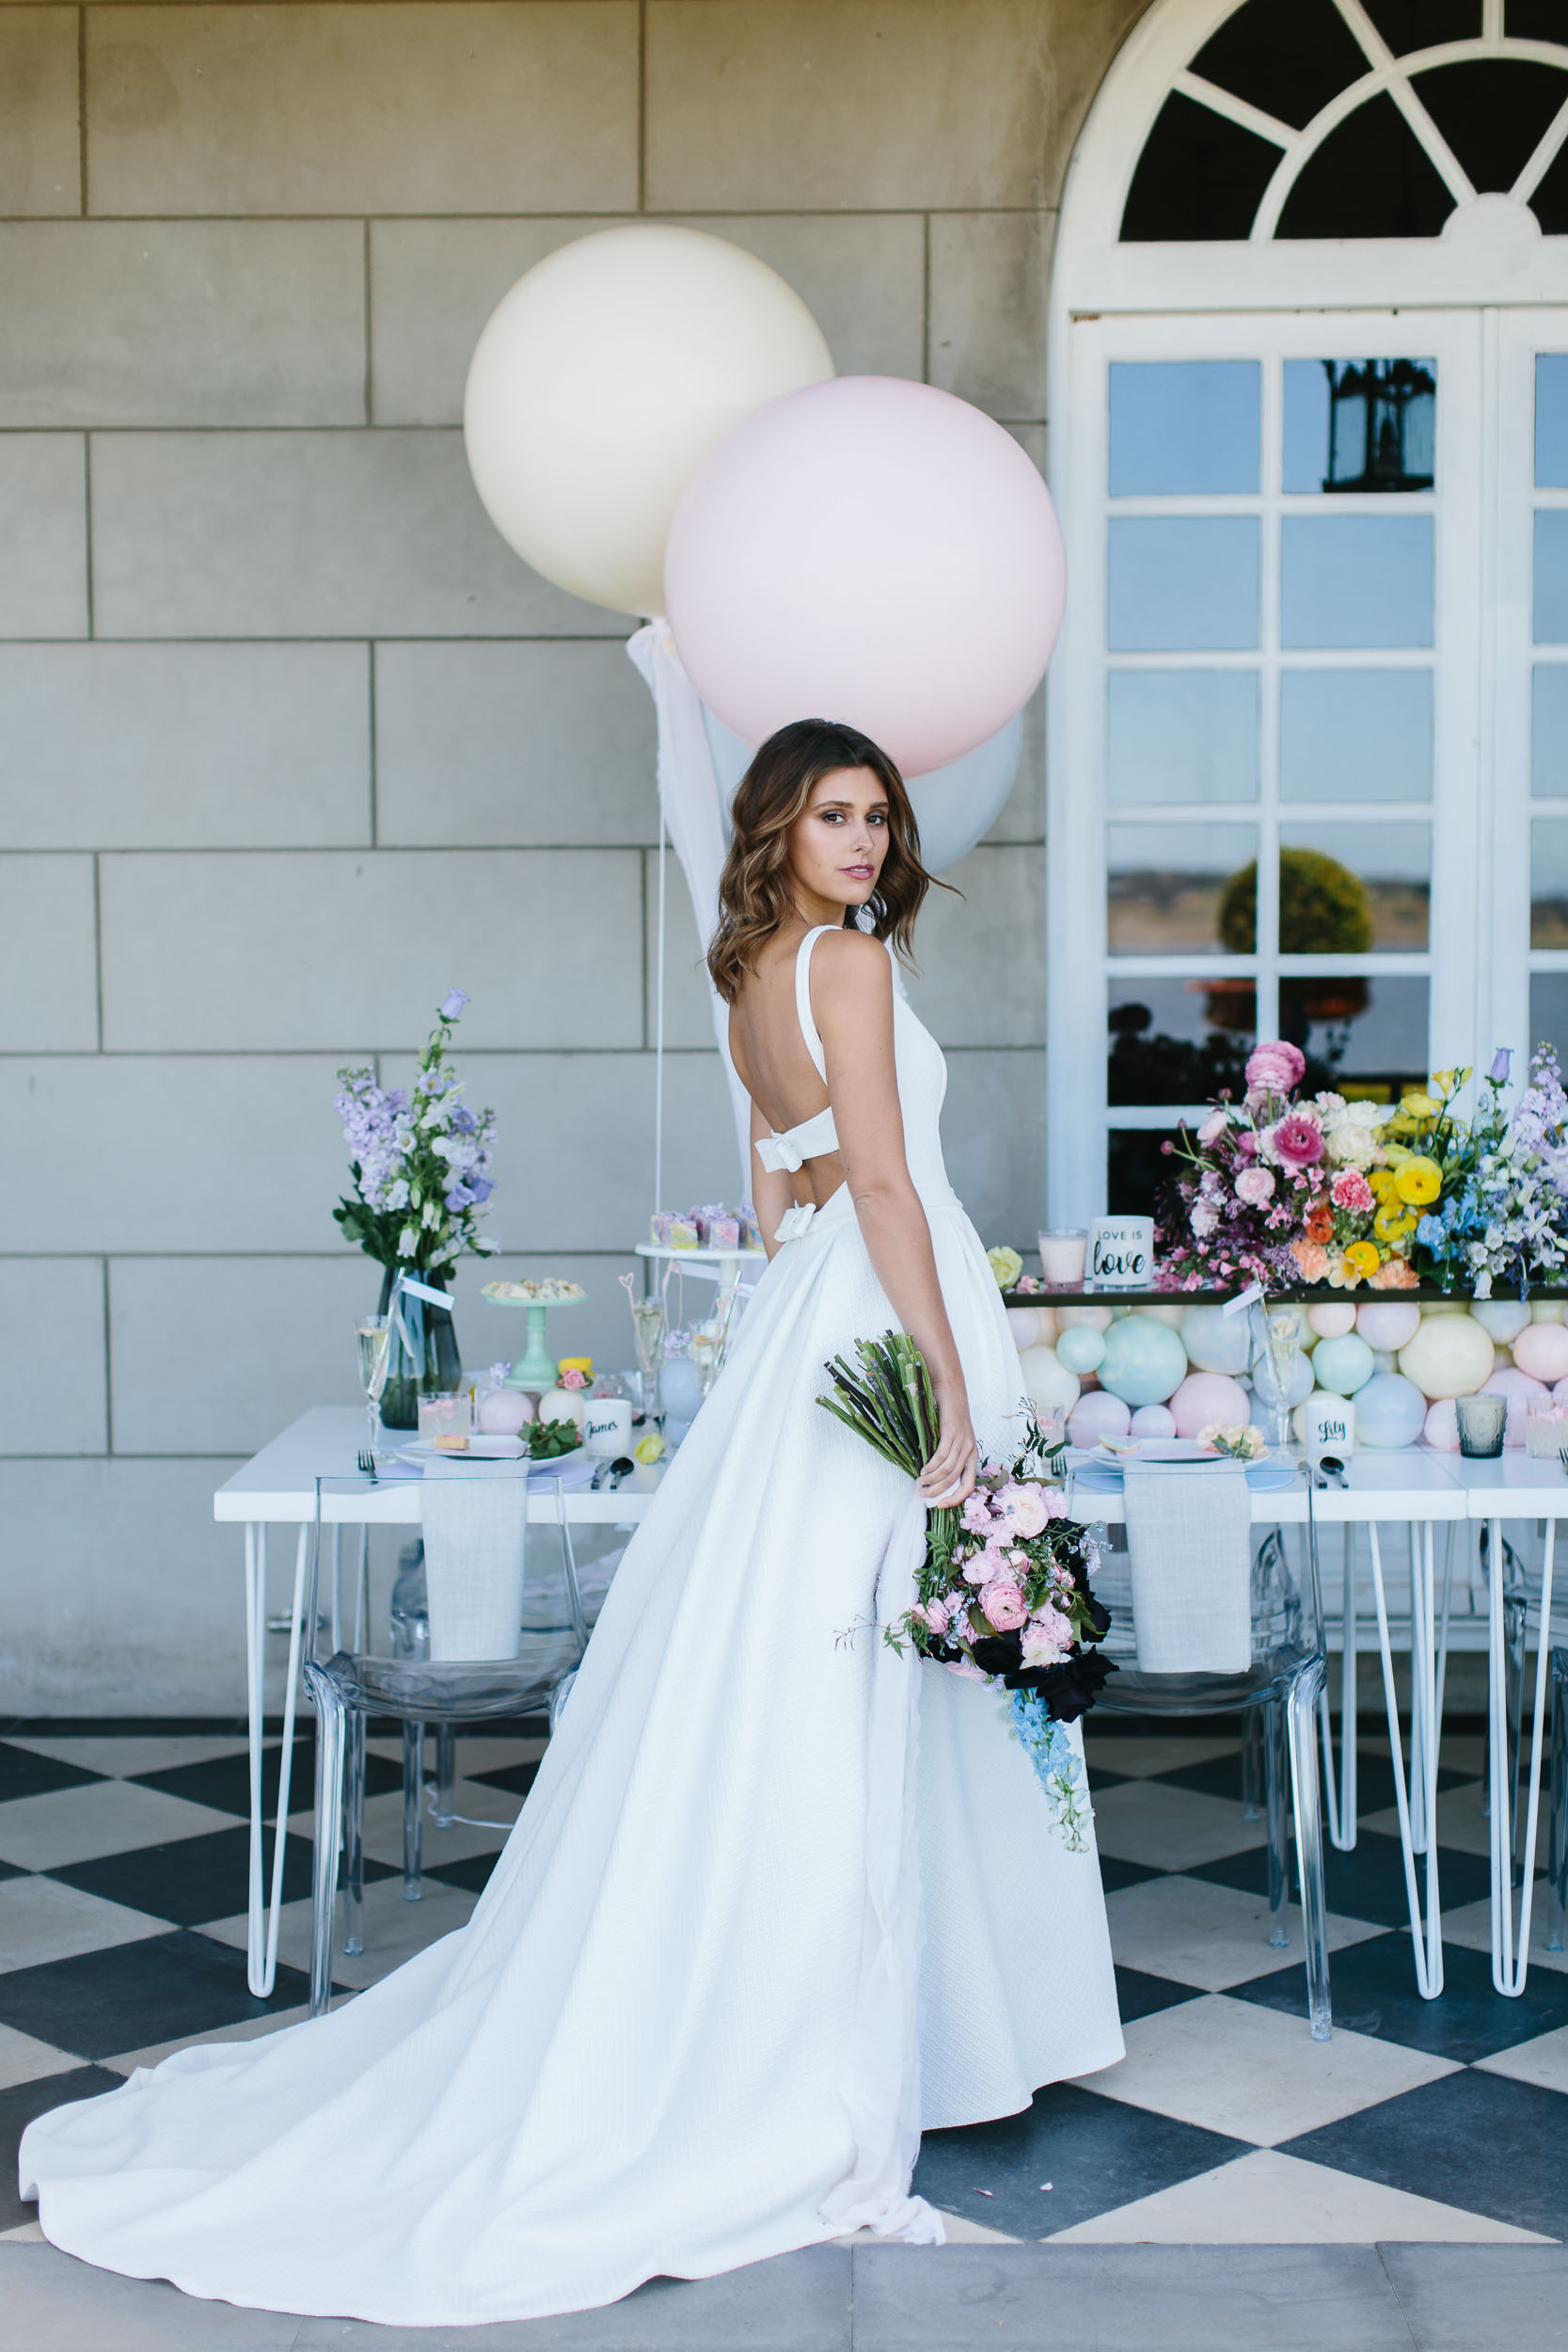 Low Back Wedding Dress with Colourful Styling | Wedding Photography by Kas Richards